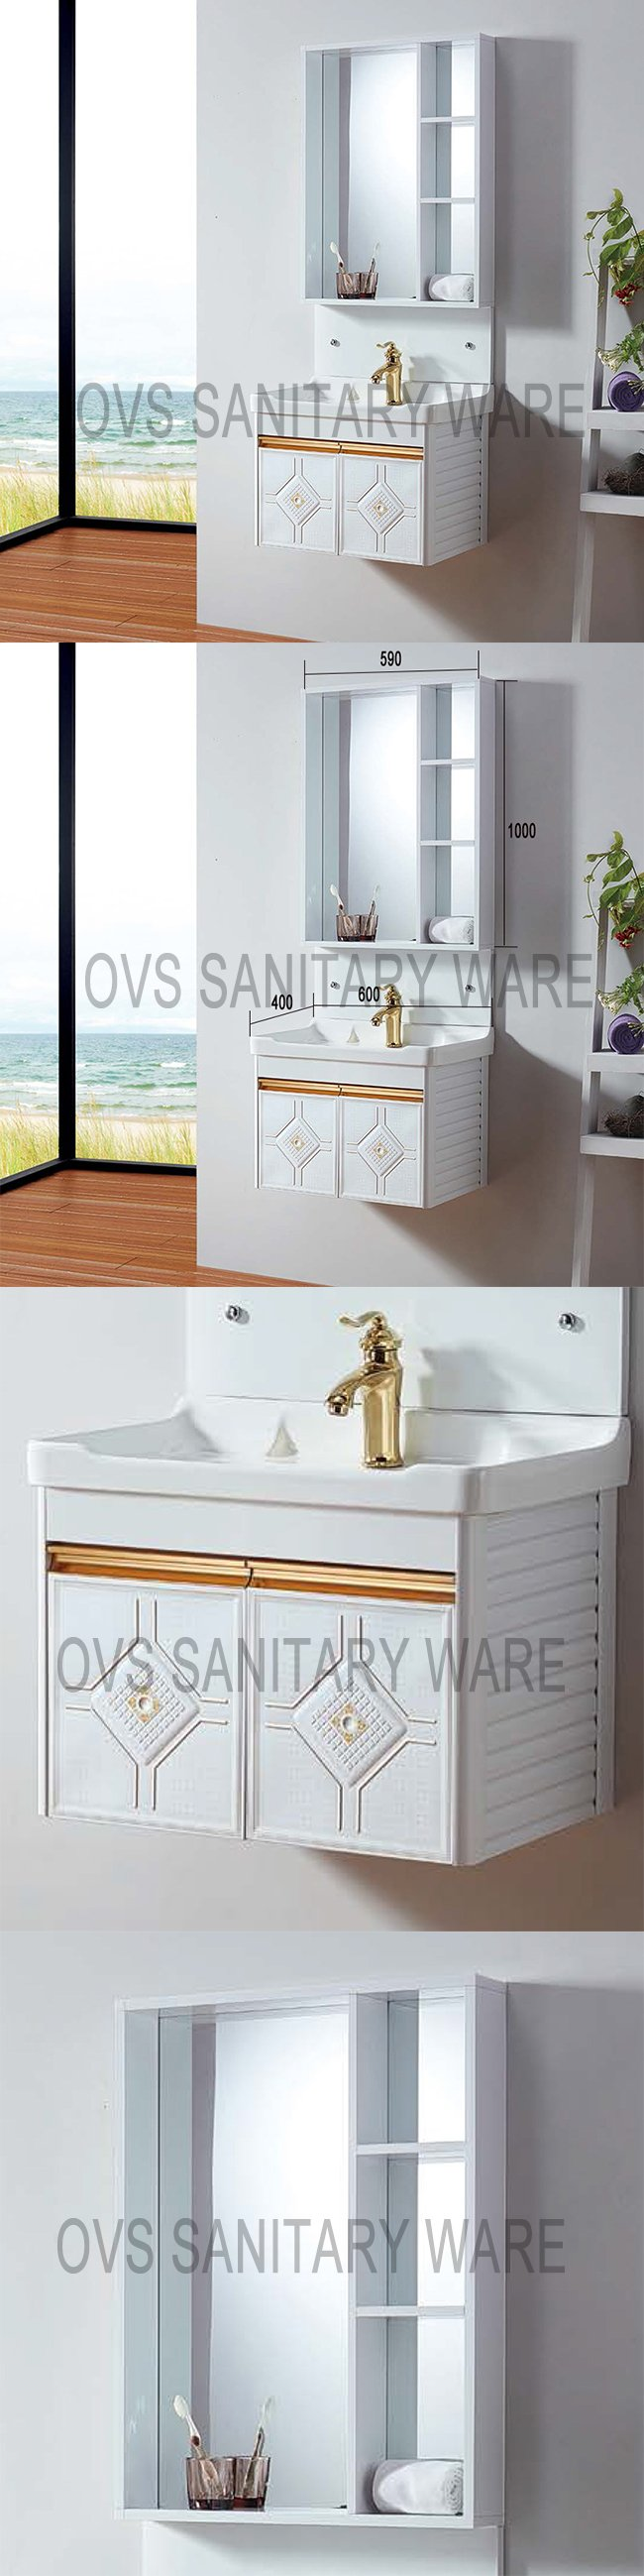 Bathroom Furniture Design Aluminum Bathroom Vanity Cabinets